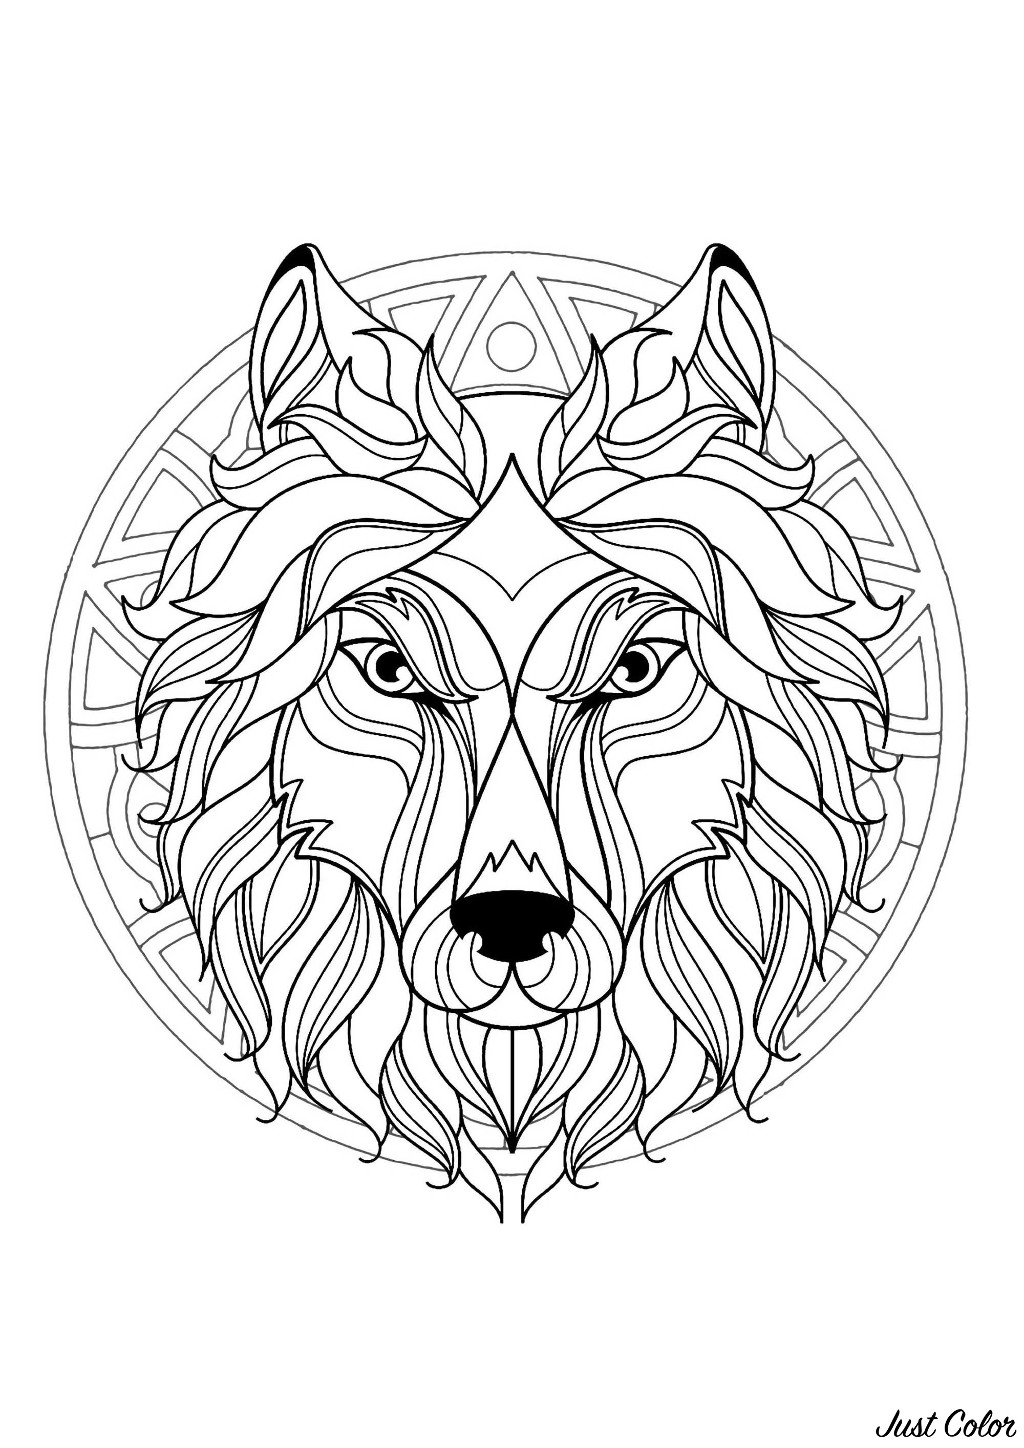 This wolf is ready to be colored in this incredible Mandala, you can print it and let your creativity guide you.